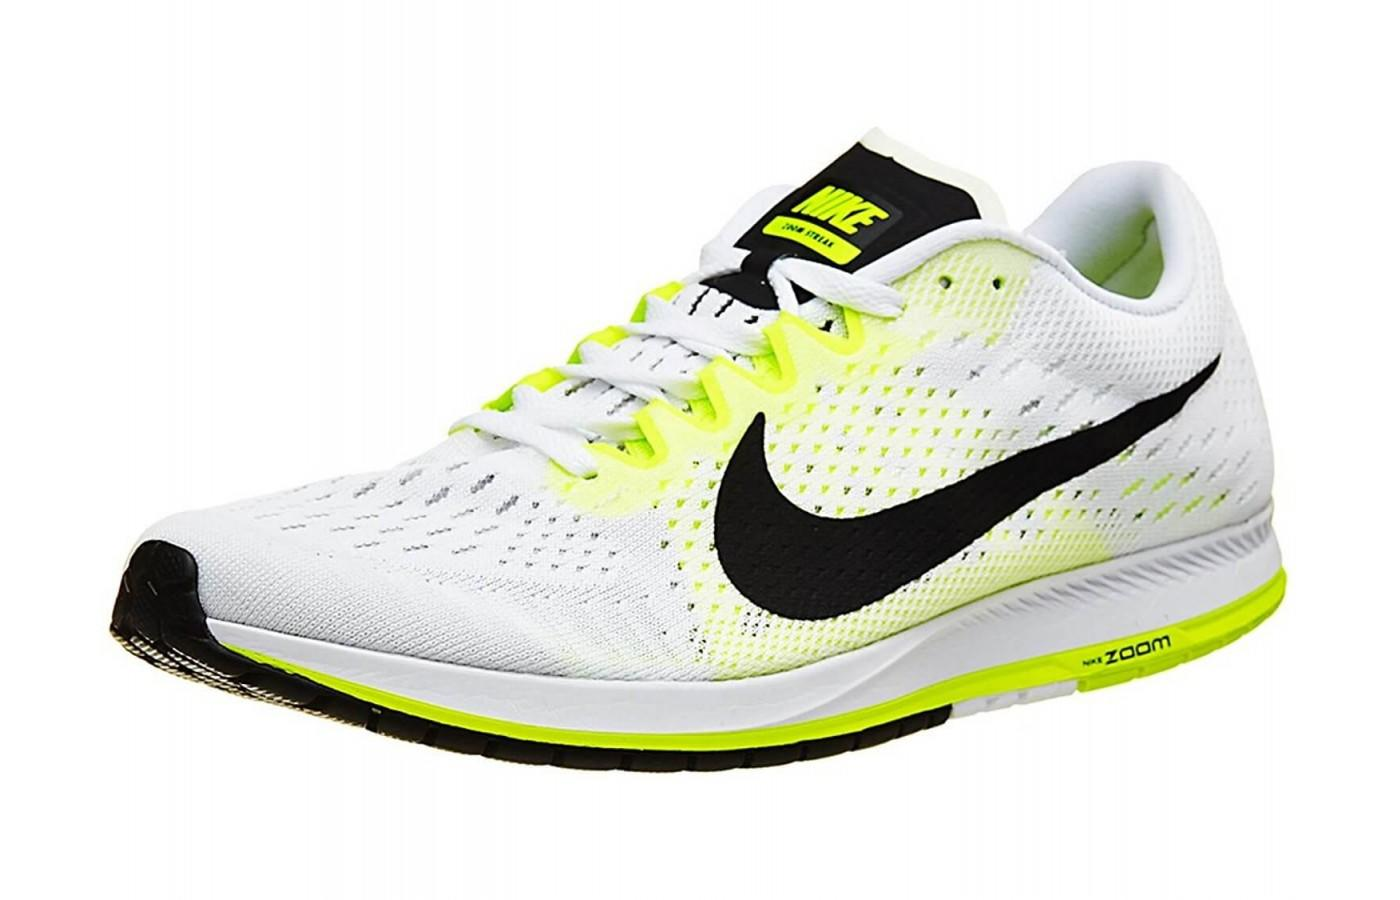 Nike Air Zoom Streak 6 Review - Buy or Not in Apr 2018?